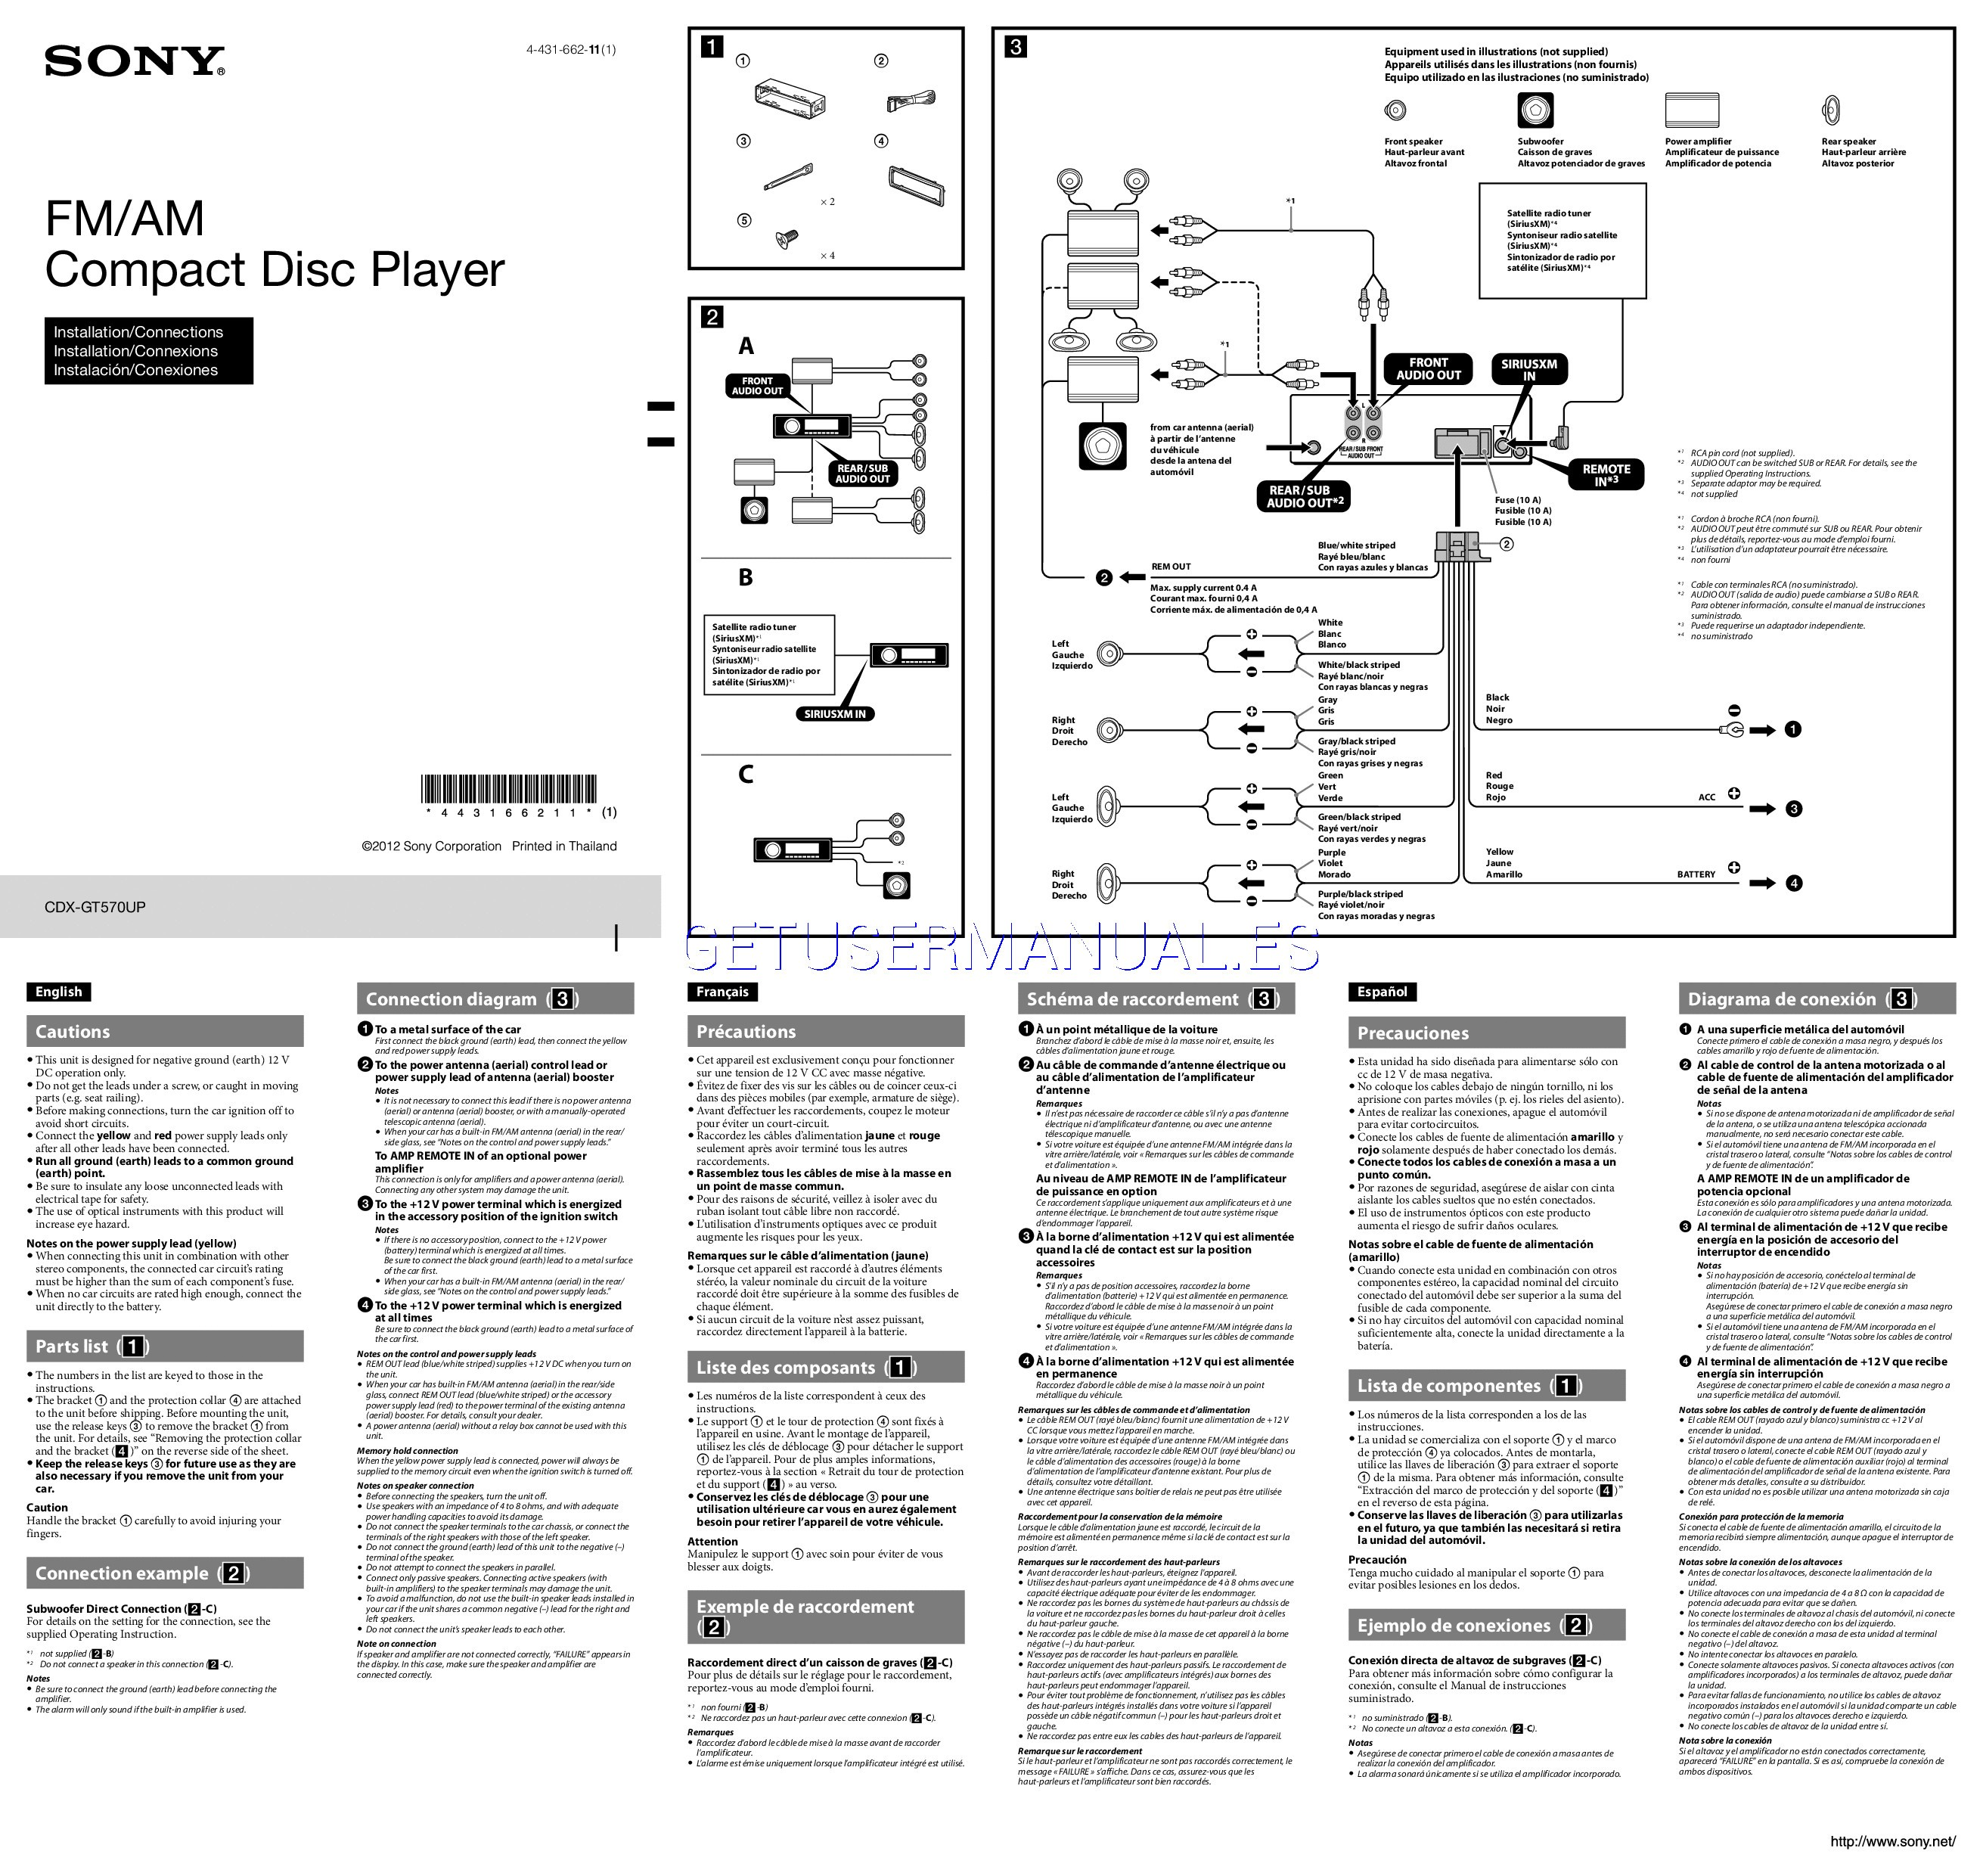 Sony Cdx Gt06 Wiring Diagram | Wiring Diagram Sony Cdx Gt Ui Wiring Diagram For Radio on sony cdx-gt260mp wiring diagram, sony head unit wiring diagram cdx, sony xav-64bt wiring diagram, js 224 equalizer wire diagram, pioneer fh-p8000bt wiring diagram, jvc car stereo wiring diagram, sony cdx gt310 wiring diagram for, sony mex-bt4000p wiring diagram, sony wiring harness diagram, kenwood kdc-bt852hd wiring diagram, sony 52wx4 wire diagram, jvc kd-r330 wiring diagram, sony car radio wiring diagram, jvc kd-x50bt wiring diagram, sony cdx-gt65uiw wiring diagram, sony cdx gt200 xplod radio diagram, sony cdx-gt40u wiring diagram,